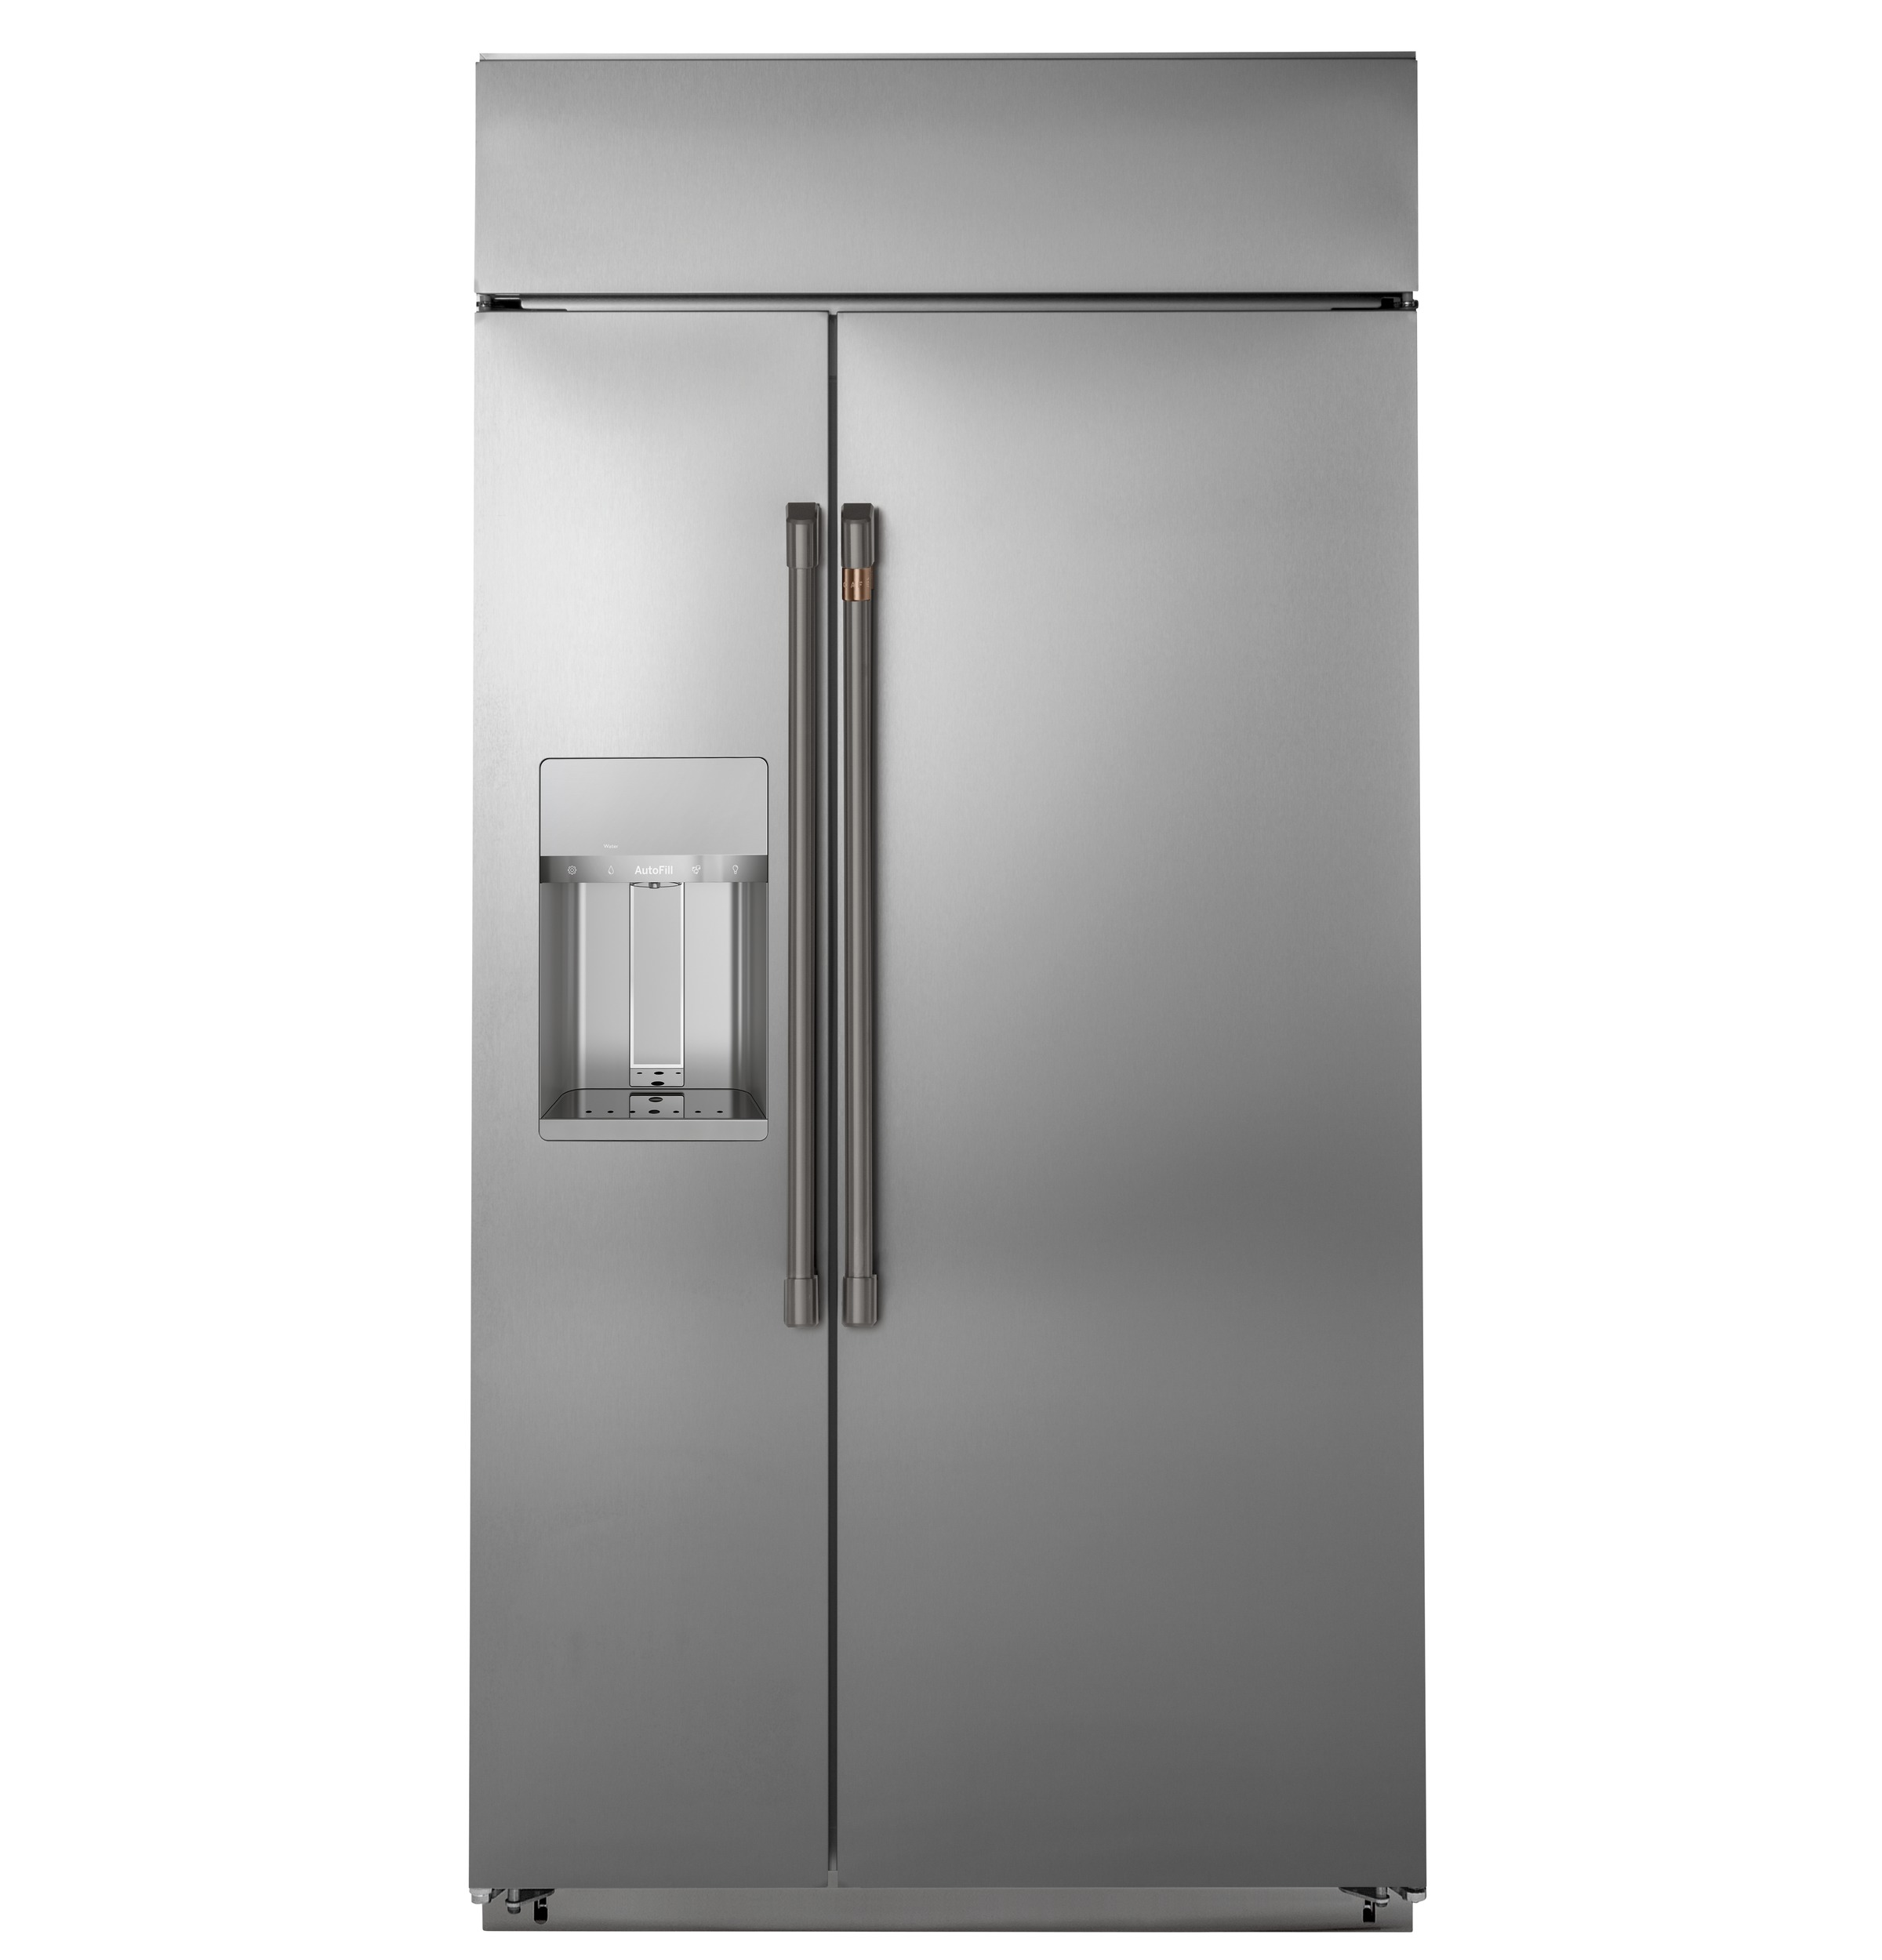 "Model: CSB48YP2NS1 | Cafe Café™ 48"" Smart Built-In Side-by-Side Refrigerator with Dispenser"